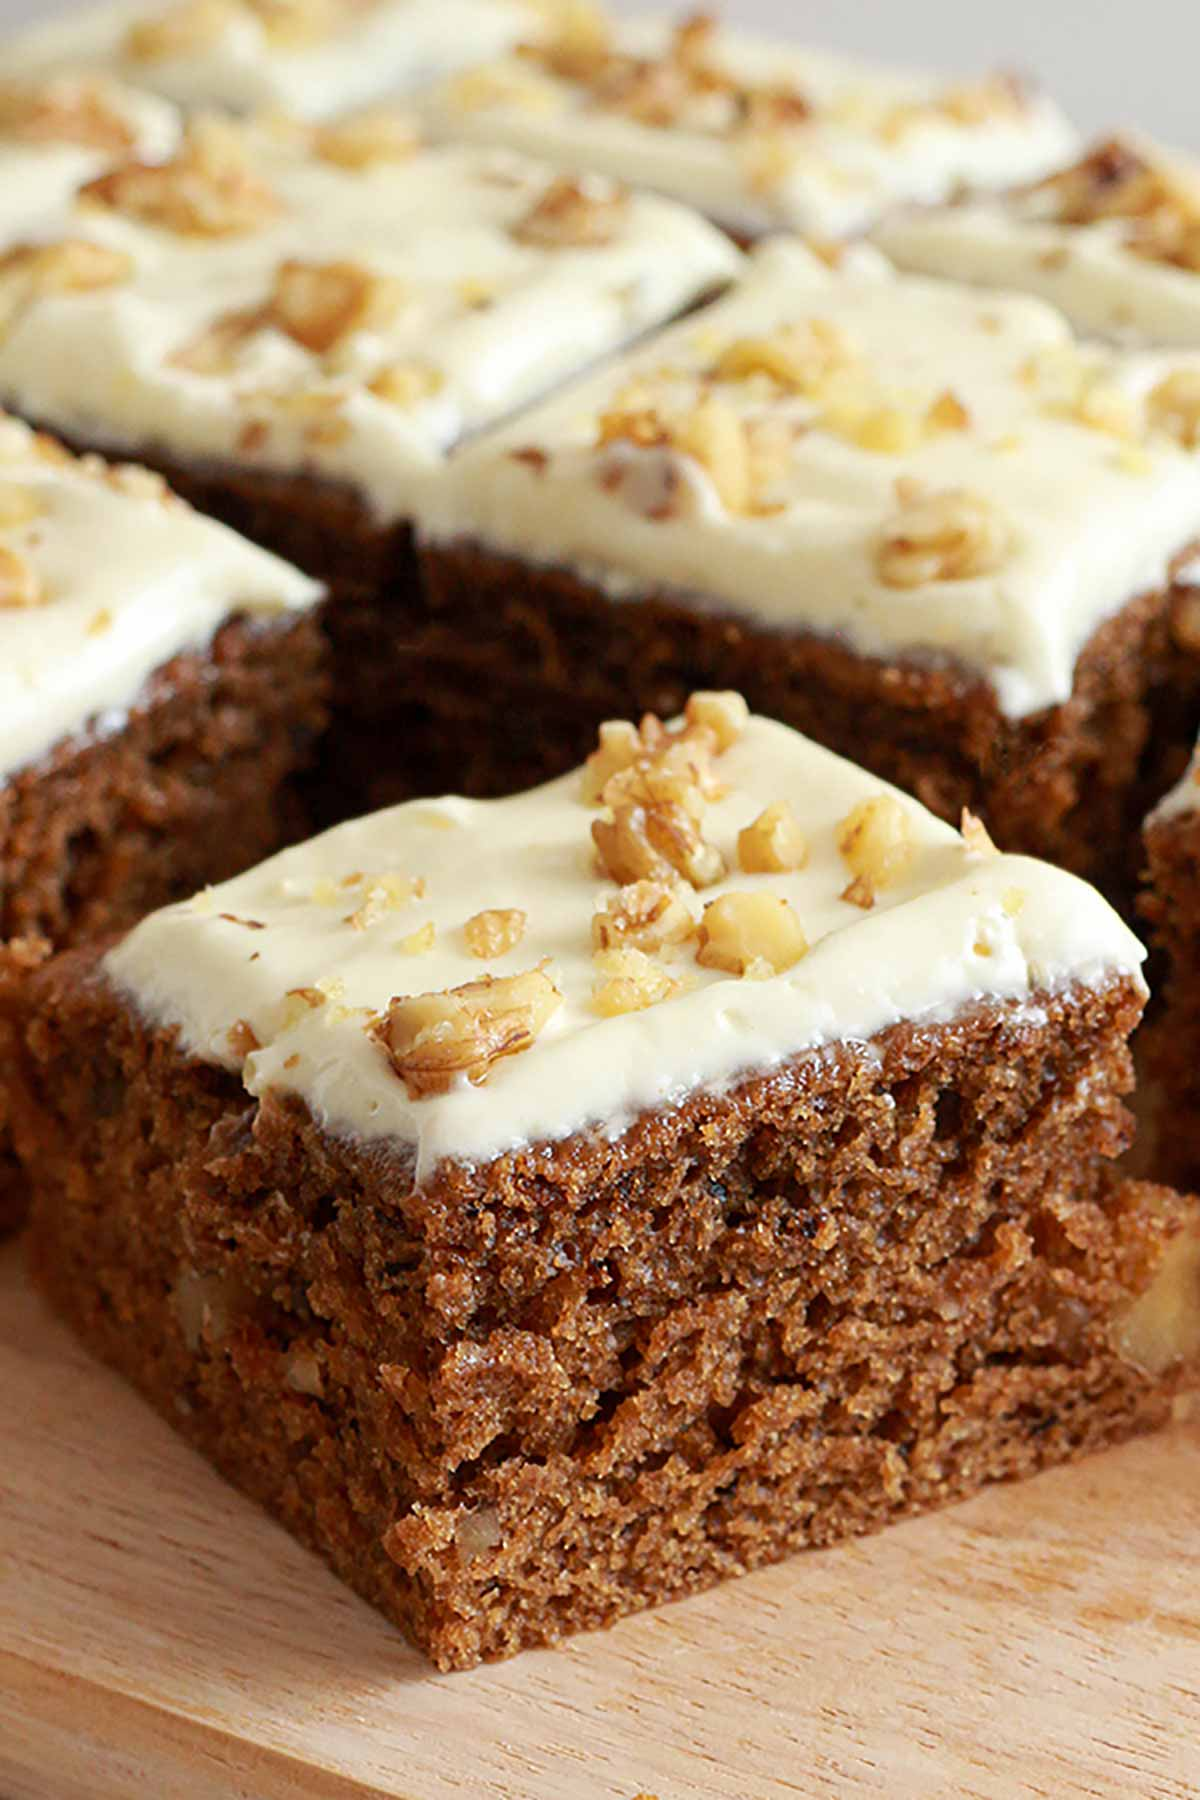 Slices Of Coffee And Walnut Cake On A Wooden Board